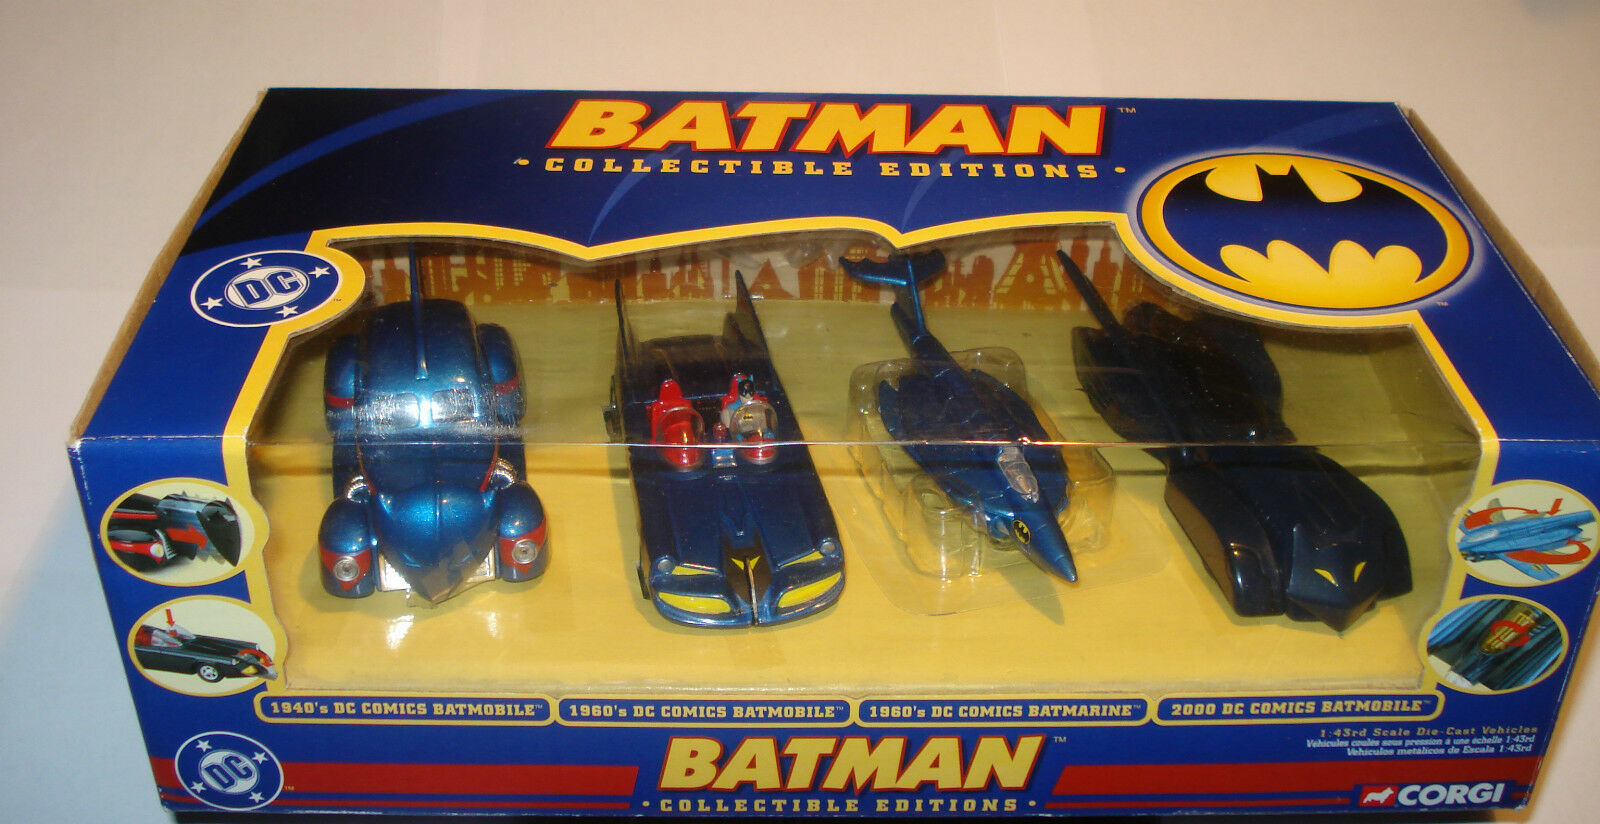 venta de ofertas CORGI BATMOBILE BATMOBILE BATMOBILE 1 43 comics azul COLLECTABLE EDITION batman Acción Figura no1 18  nuevo estilo